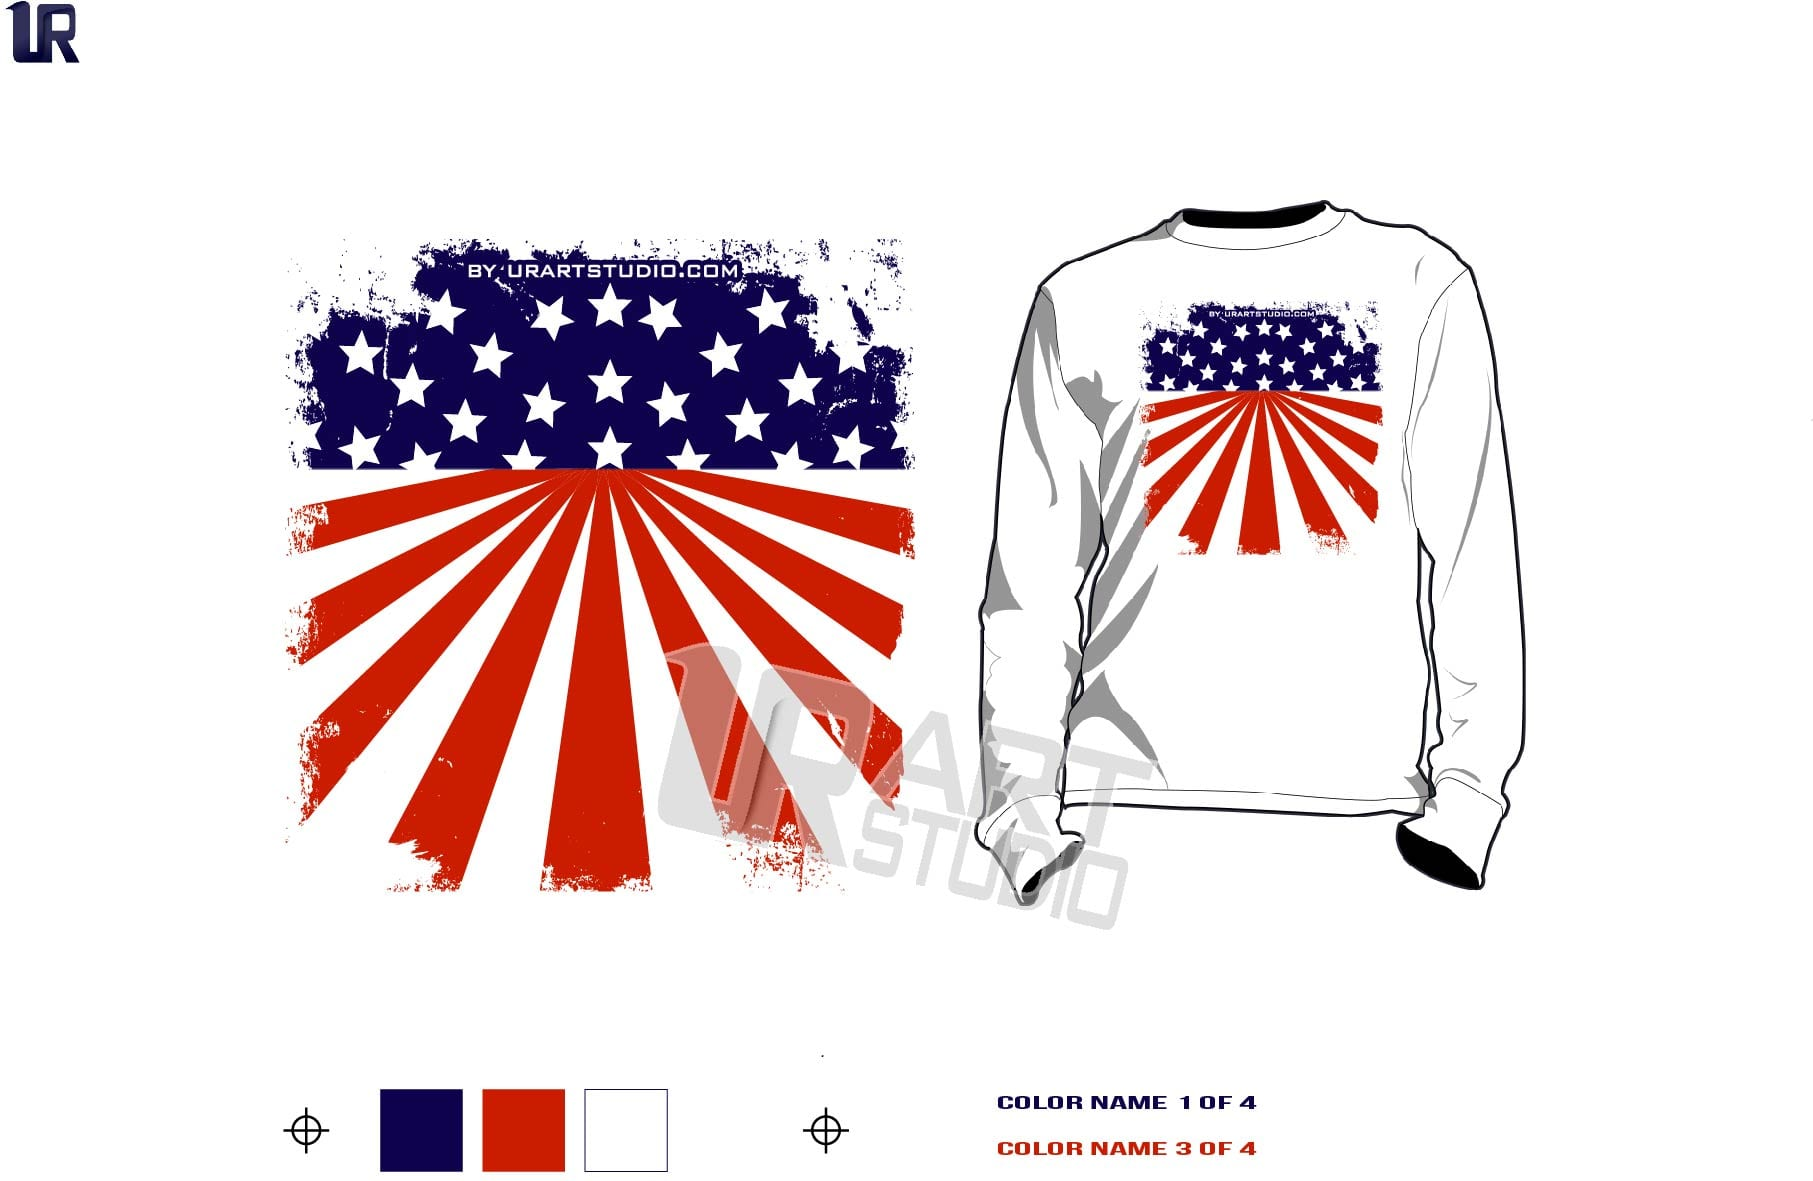 119c365611e FREE DOWNLOAD Color seperated AMERICAN FLAG vector design for print on  Tshirt and other apparel